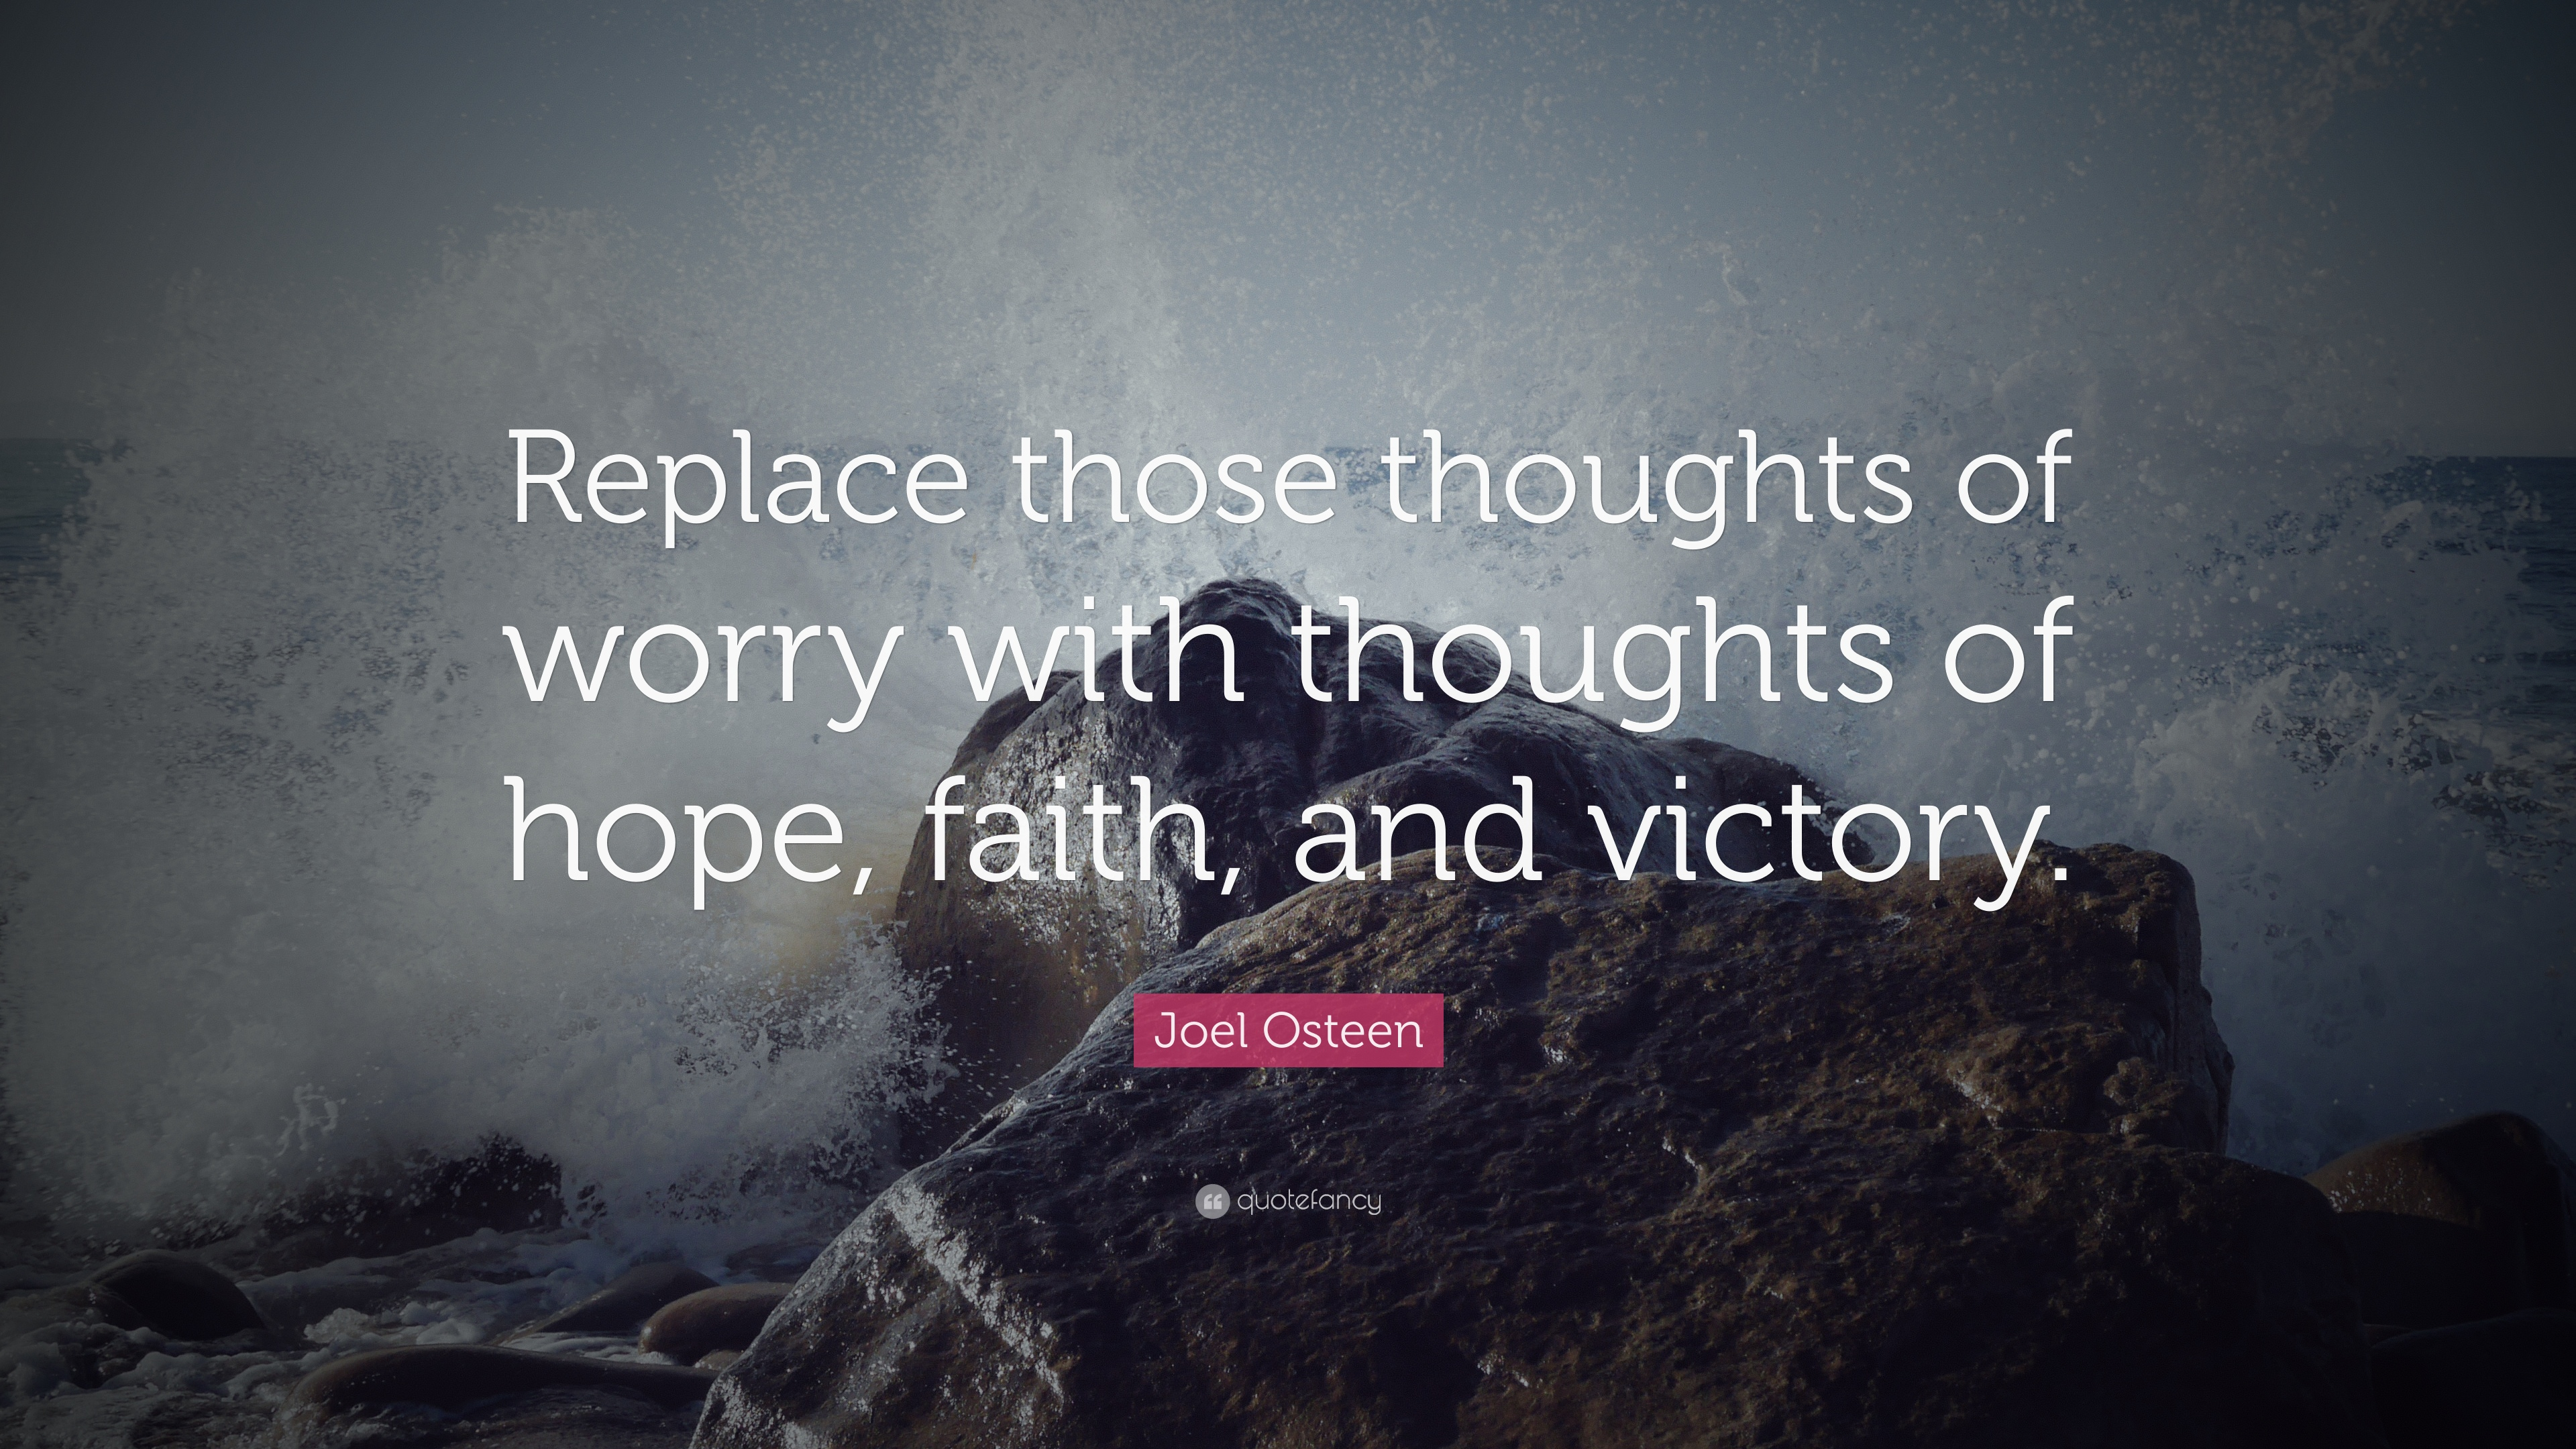 Joel Osteen Quote Replace Those Thoughts Of Worry With Thoughts Of